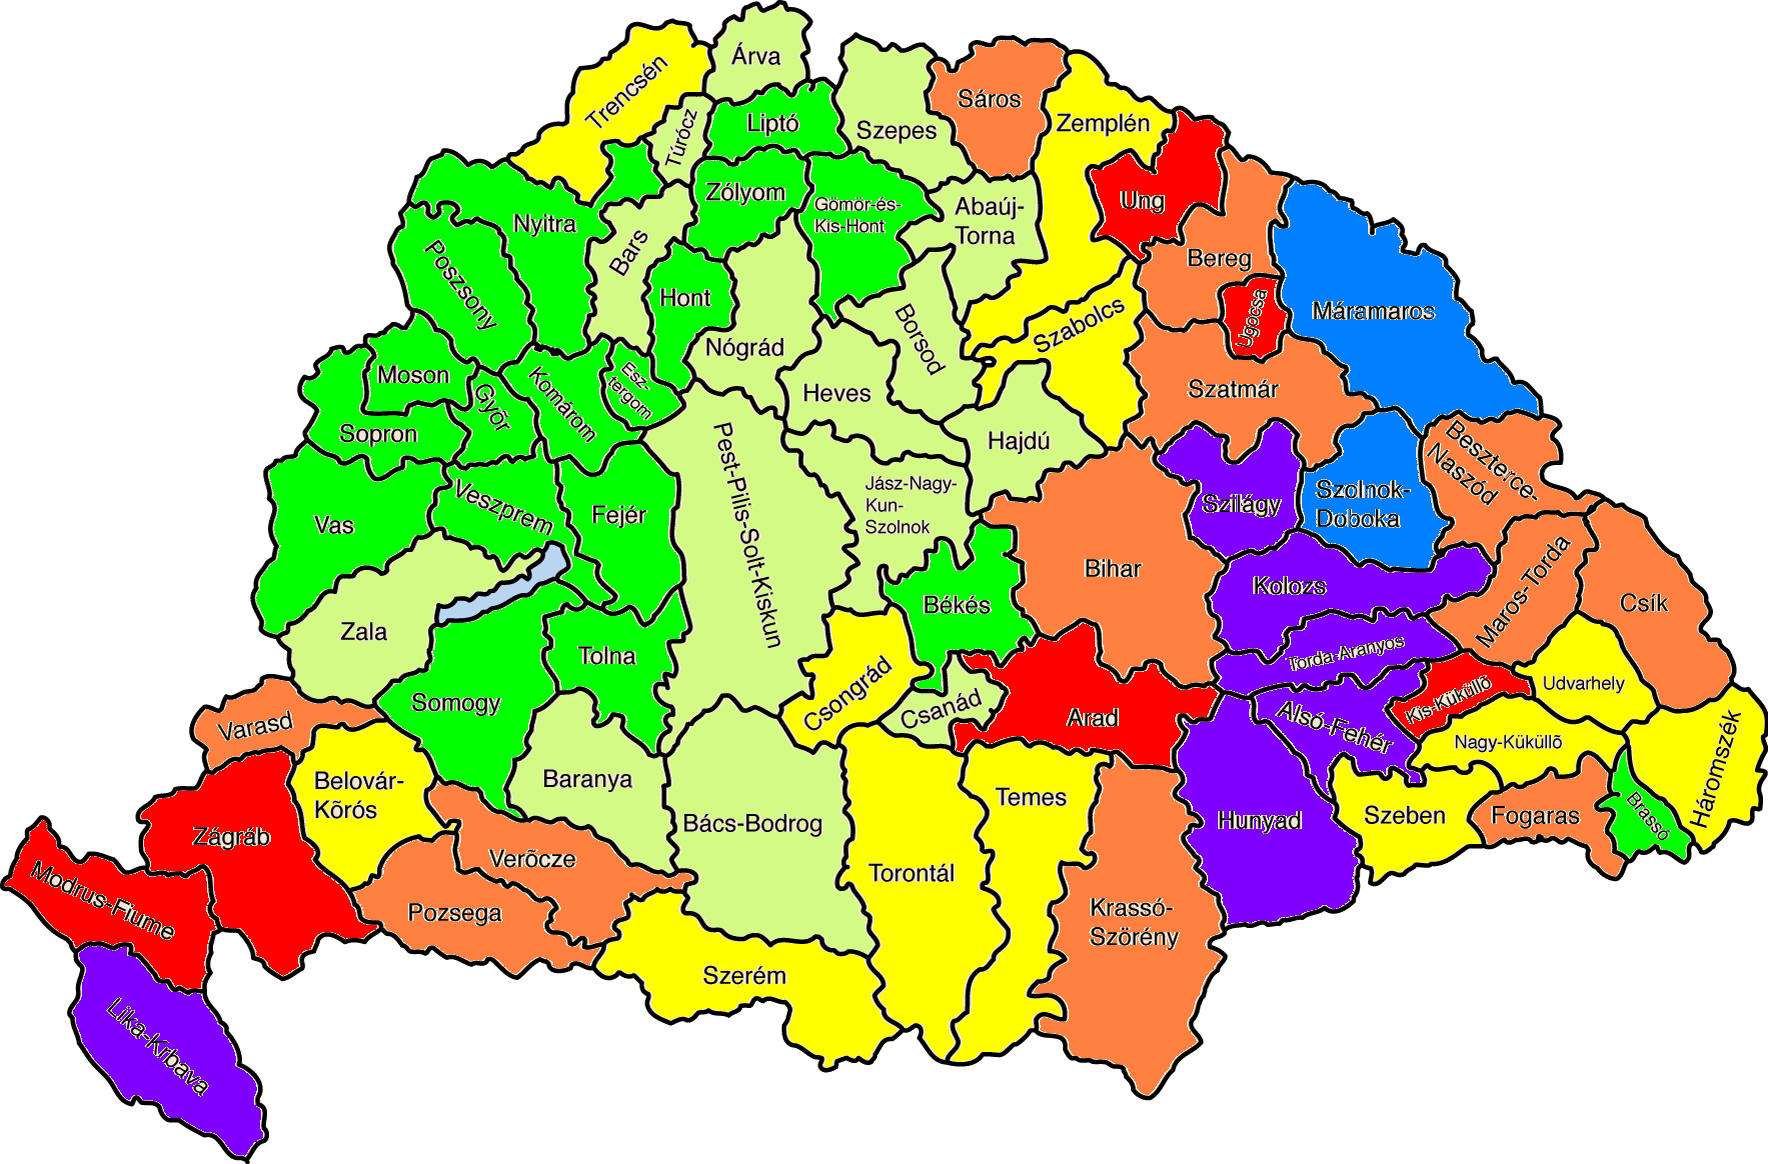 File:Kingdom of Hungary Literacy 1900.png - Wikimedia Commons on habsburg monarchy, siege of vienna map, kingdom of prussia, sukhothai kingdom map, duchy of burgundy map, holy crown of hungary, great moravia, republic of macedonia map, hungarian people, frankish kingdom map, republic of china map, democratic republic of the congo map, republic of florence map, kingdom of hungary 1910, hungarian language, mushroom kingdom map, union of soviet socialist republics map, mongol invasion of europe, house of habsburg, treaty of trianon, kingdom of hungary flag, stephen i of hungary, battle of varna, confederate states of america map, kingdom of yugoslavia, kingdom of hungary in world war 2, hungary counties map, kingdom of bohemia, kingdom of hungary in 1400, revolution of 1848 map, socialist federal republic of yugoslavia, ayutthaya kingdom map, confederation of the rhine map, john hunyadi,